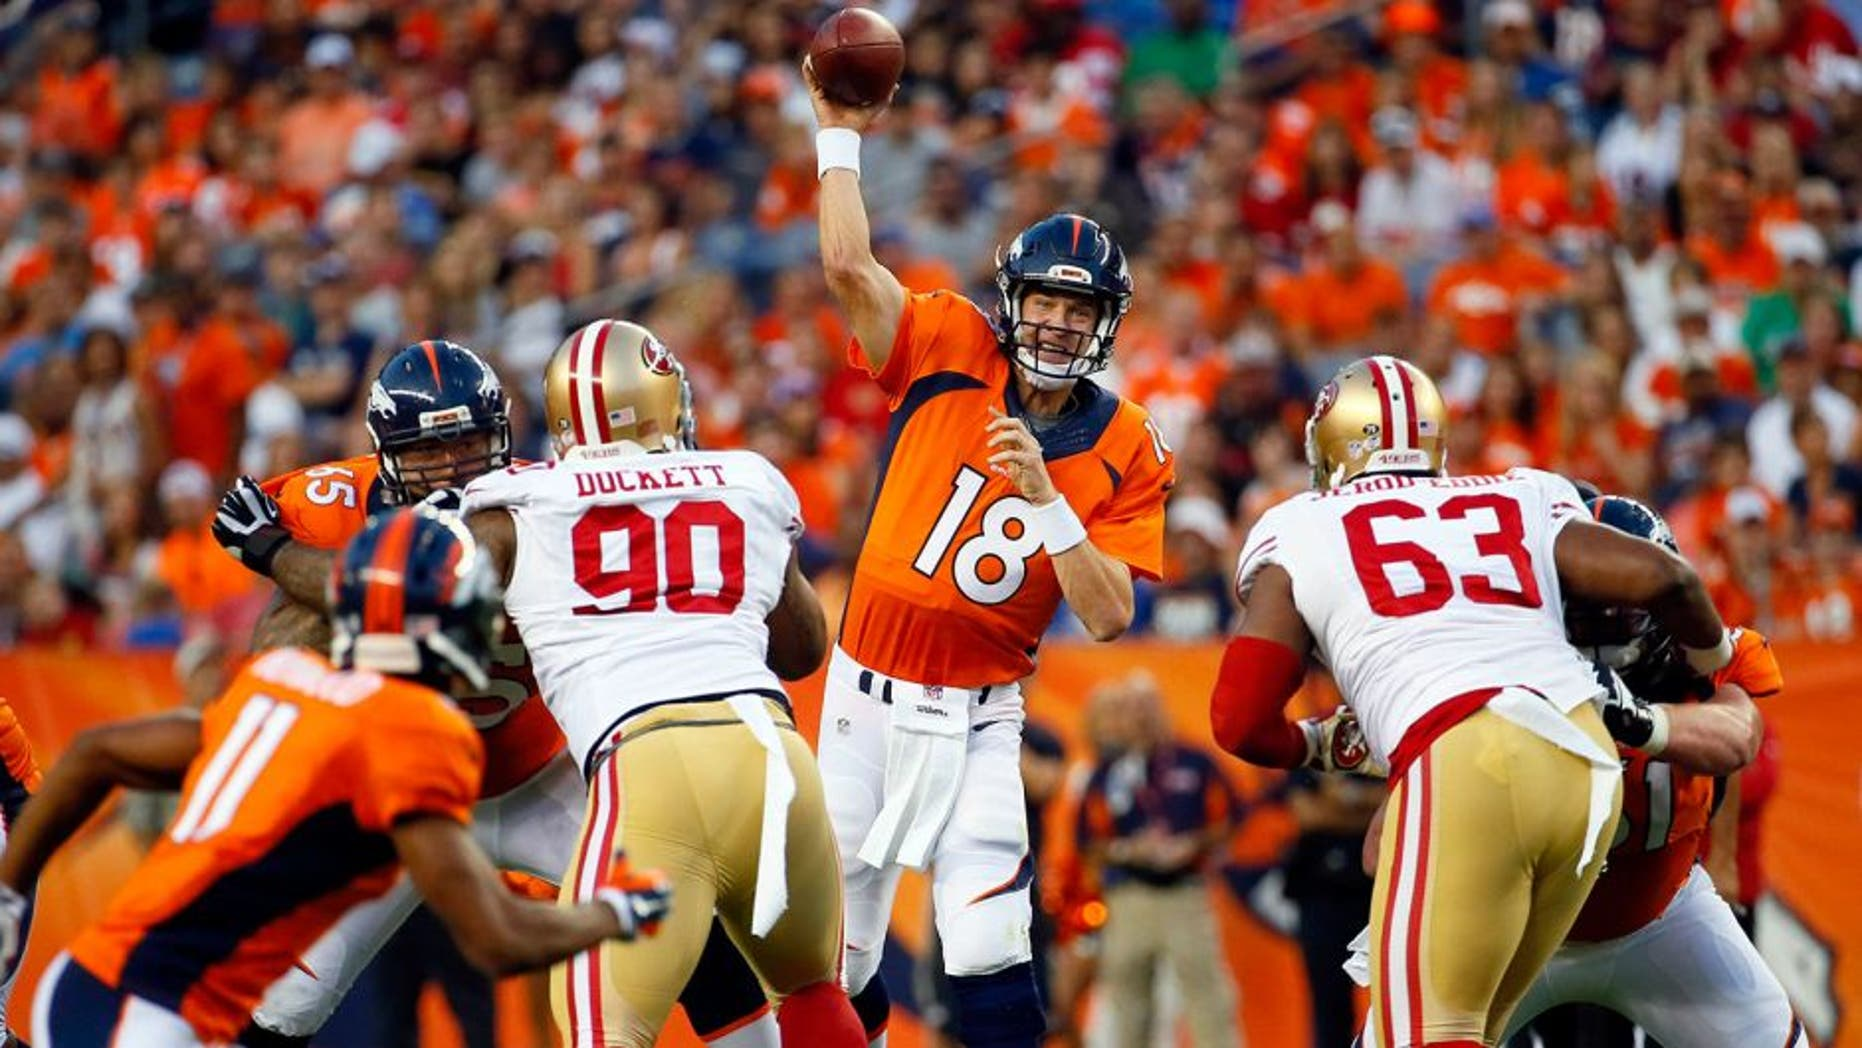 Denver Broncos quarterback Peyton Manning (18) throws as San Francisco 49ers defensive tackle Darnell Dockett (90) and Tony Jerod-Eddie (63) rush during the first half of an NFL preseason football game, Saturday, Aug. 29, 2015, in Denver. (AP Photo/Jack Dempsey)